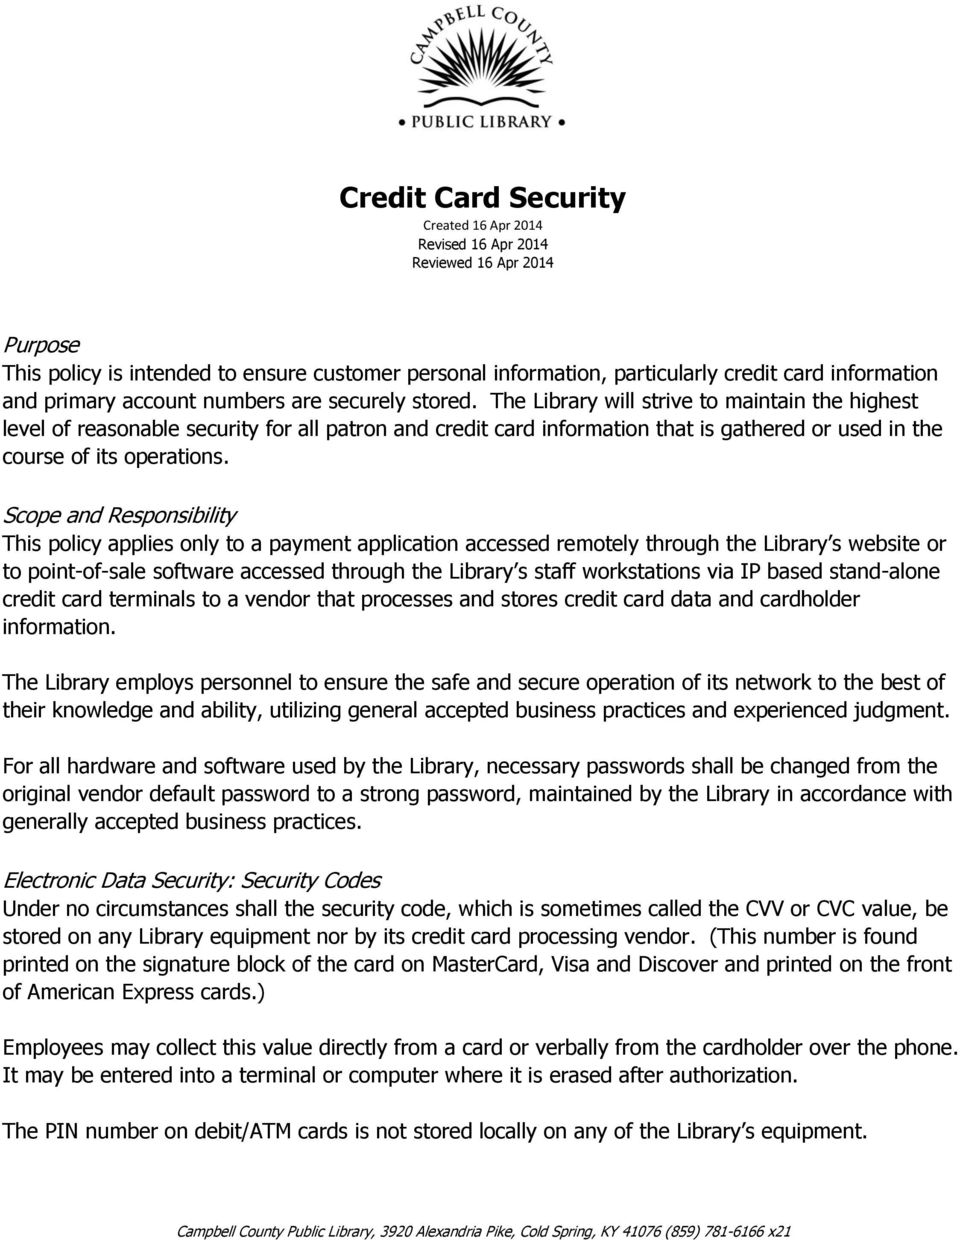 The Library will strive to maintain the highest level of reasonable security for all patron and credit card information that is gathered or used in the course of its operations.